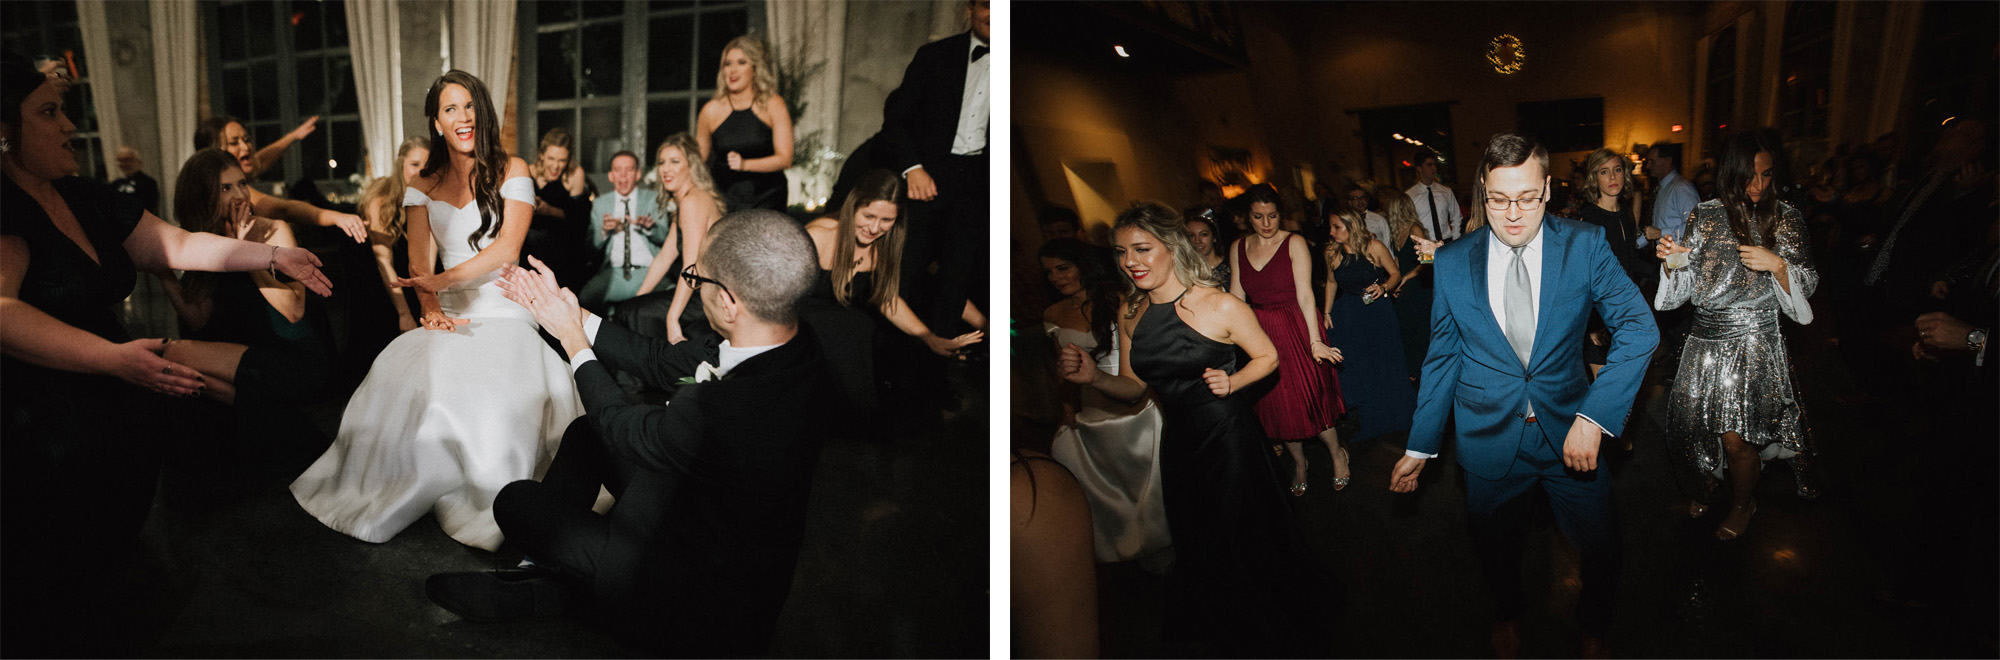 Brittany-Sam-New-Years-Steam-Plant-Wedding-102.jpg